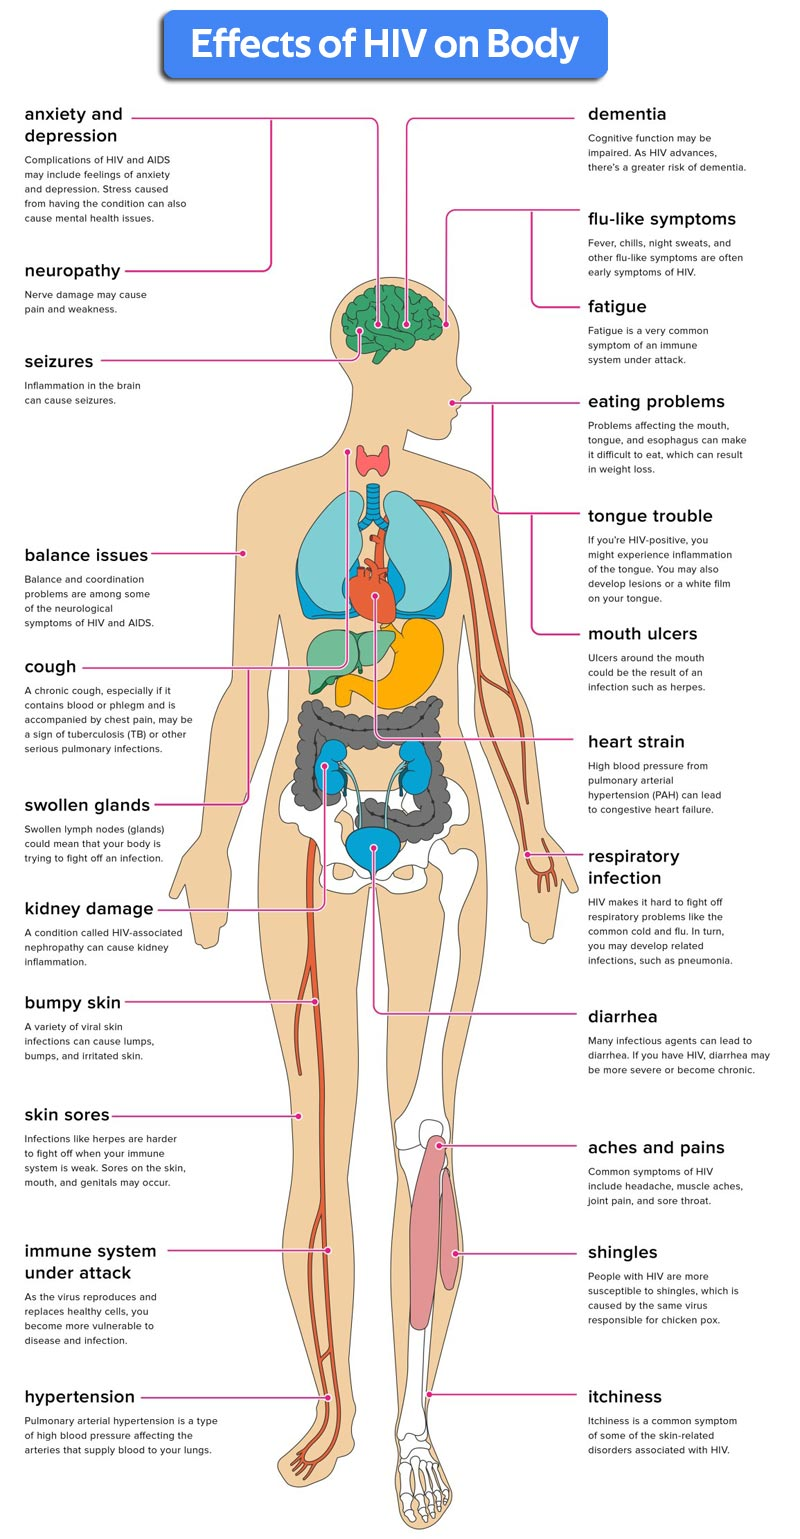 Effects of HIV on Body